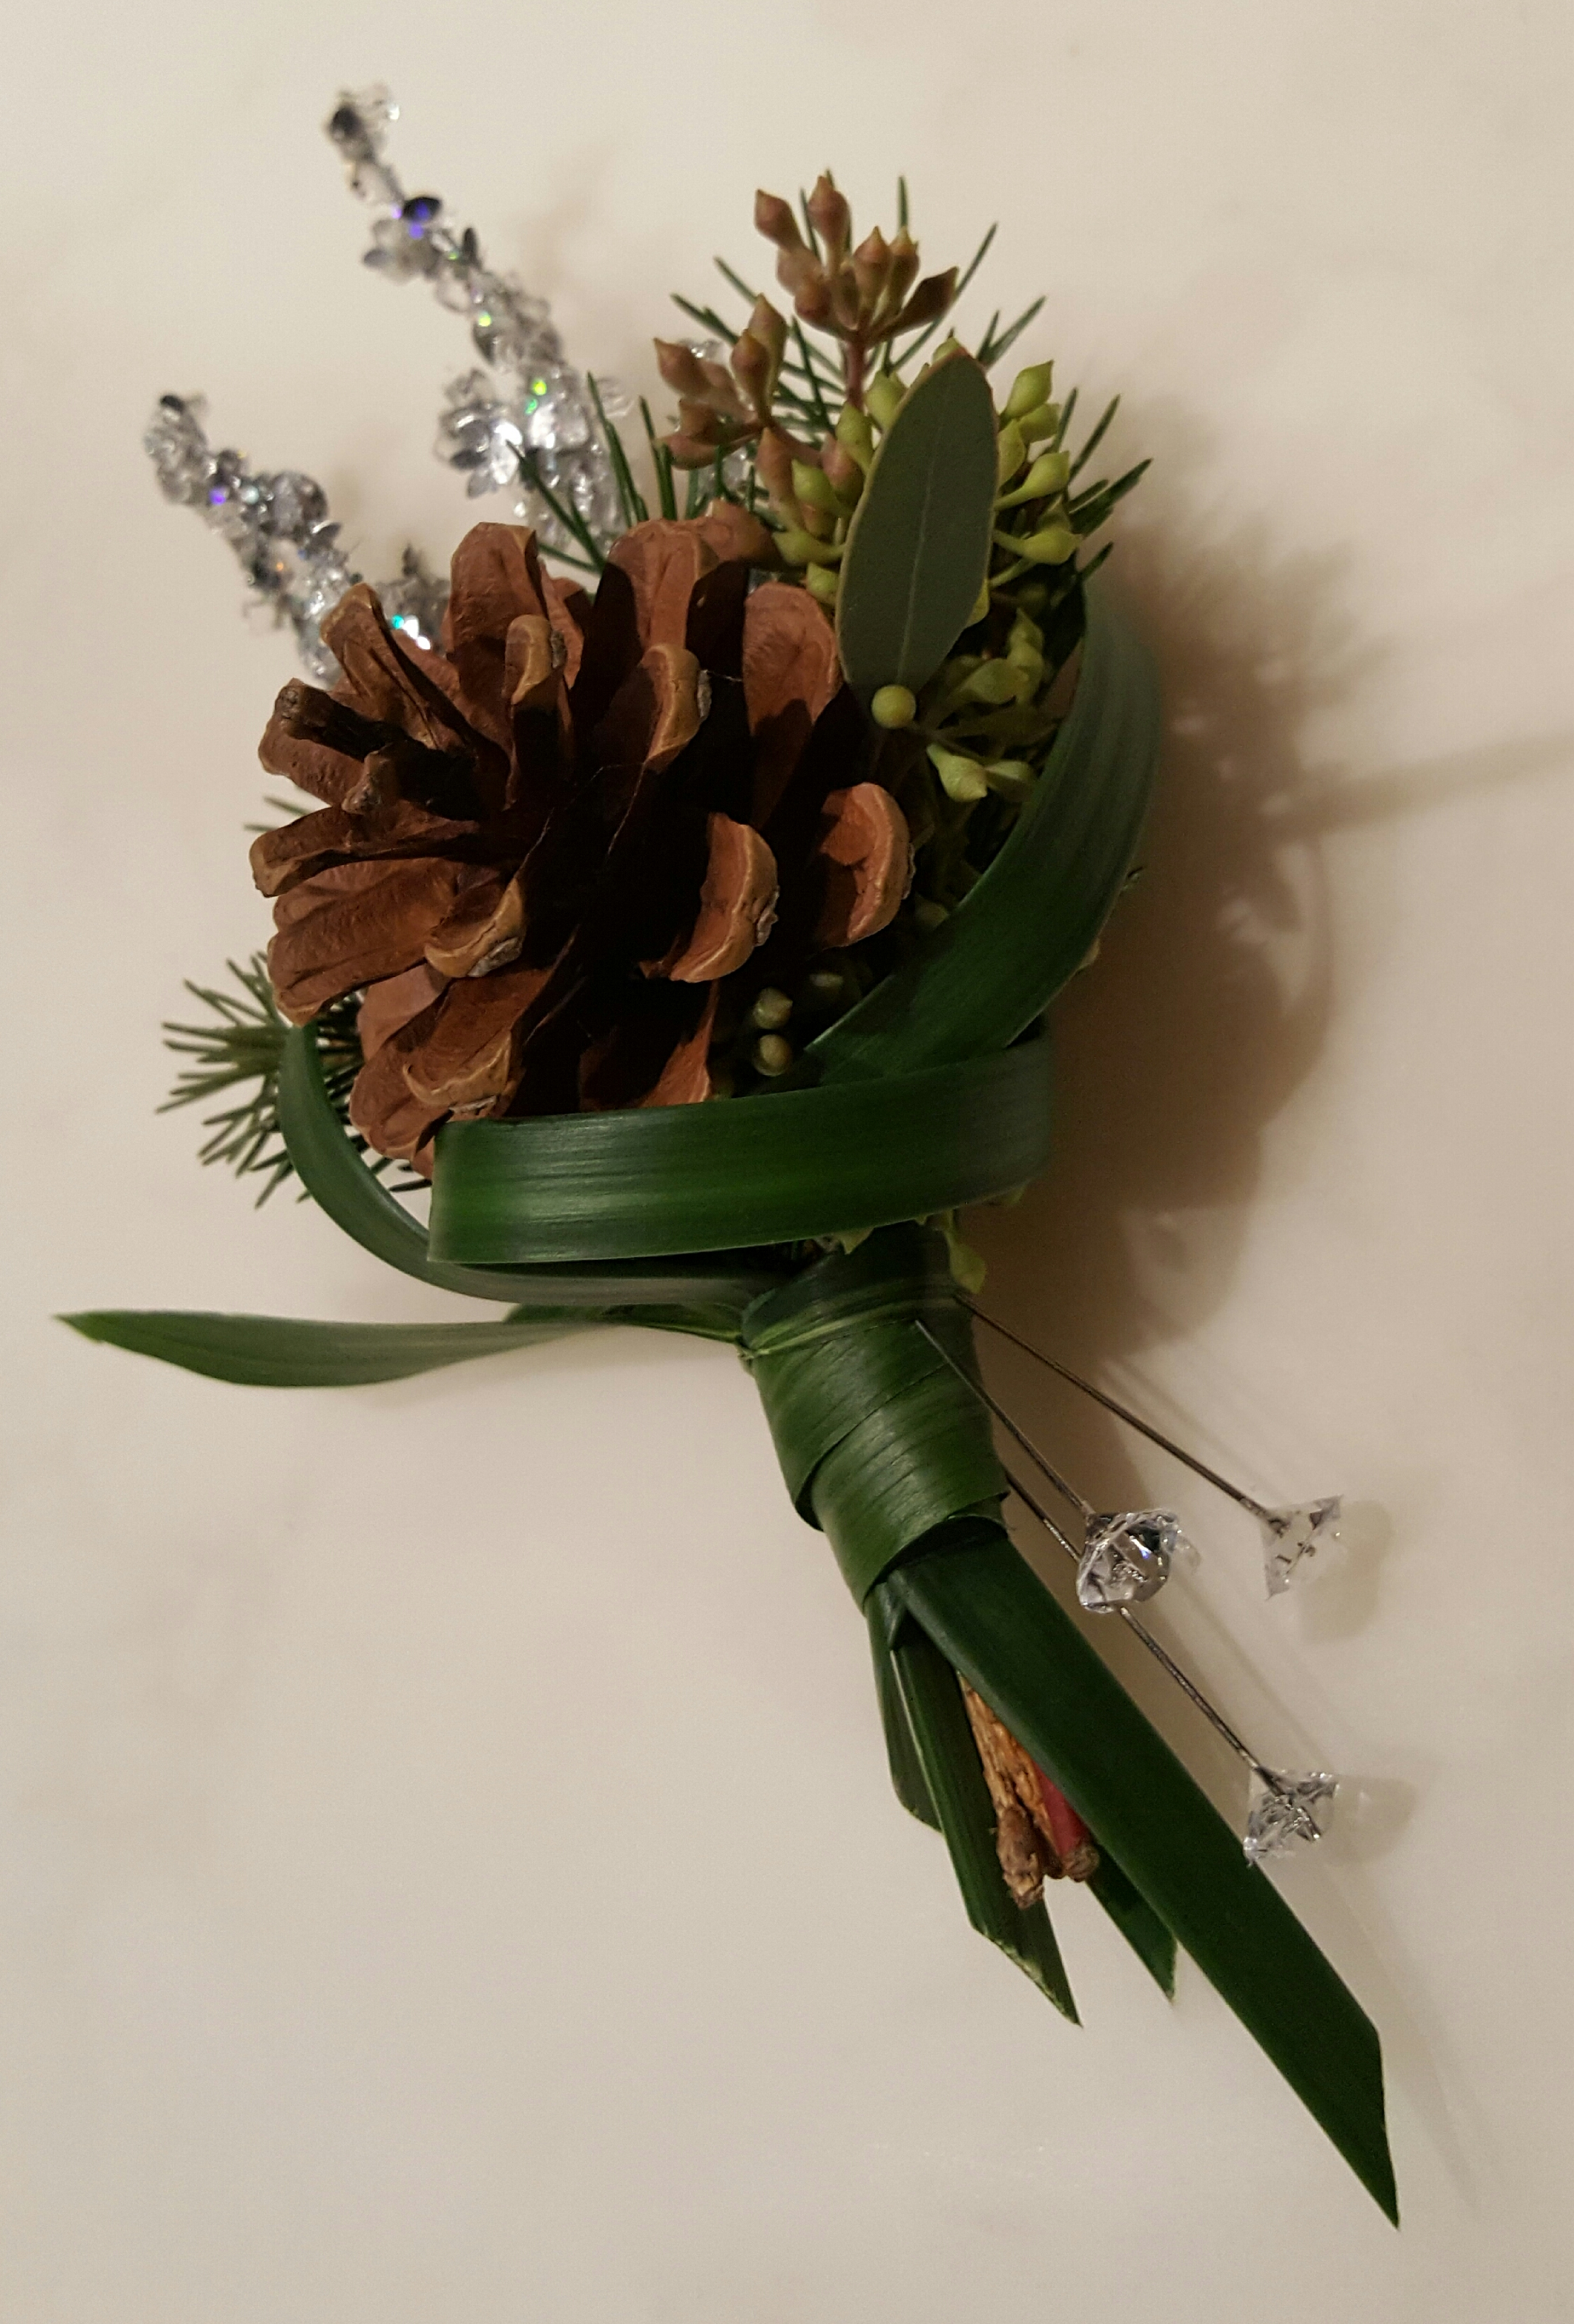 Pine cone in a floral arrangement designed by Bouquets & Beyond